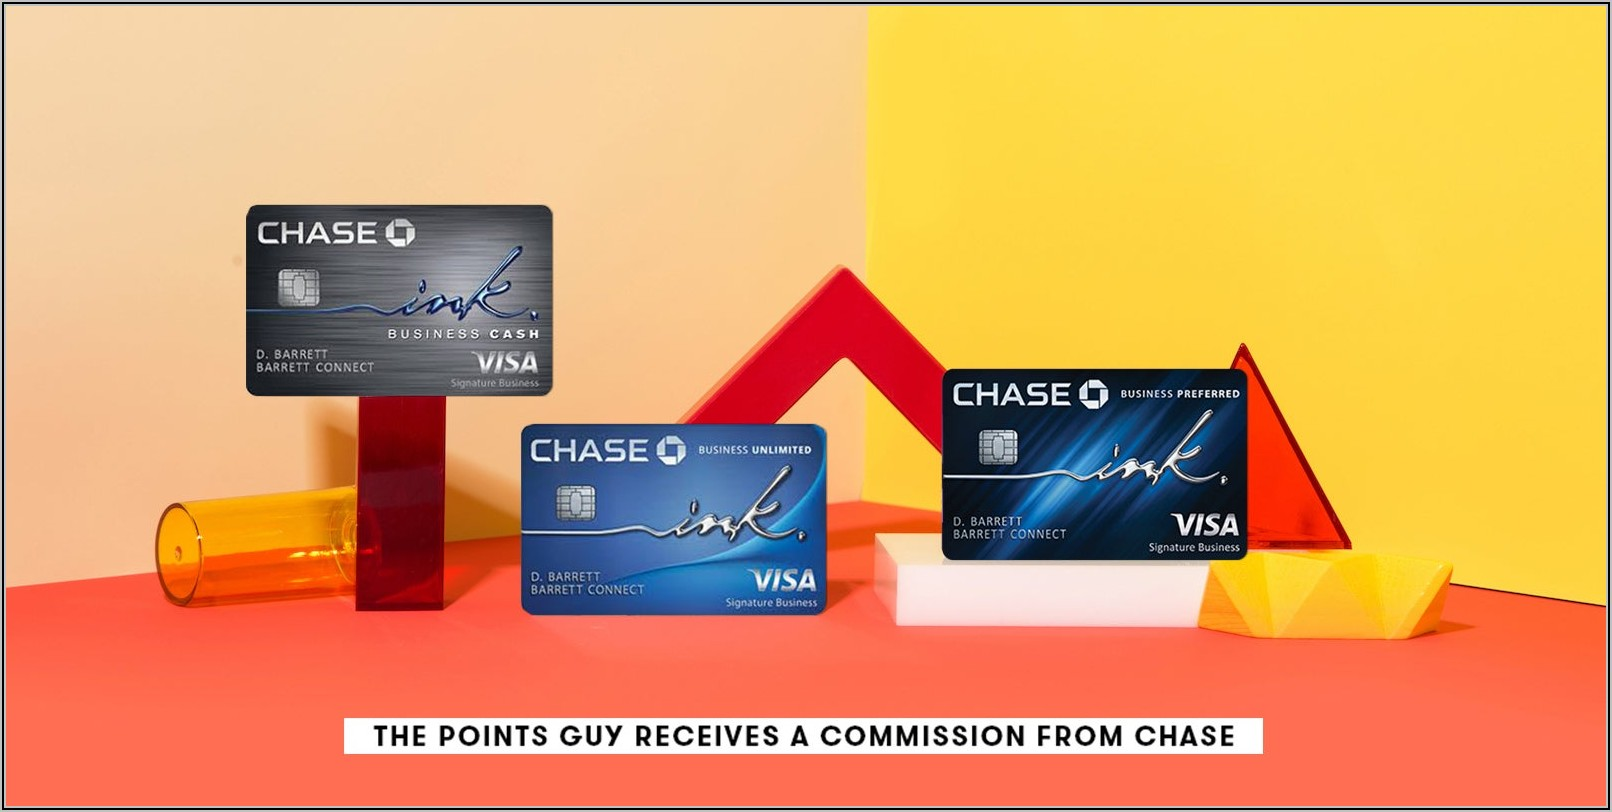 Chase Ink Business Card Comparison